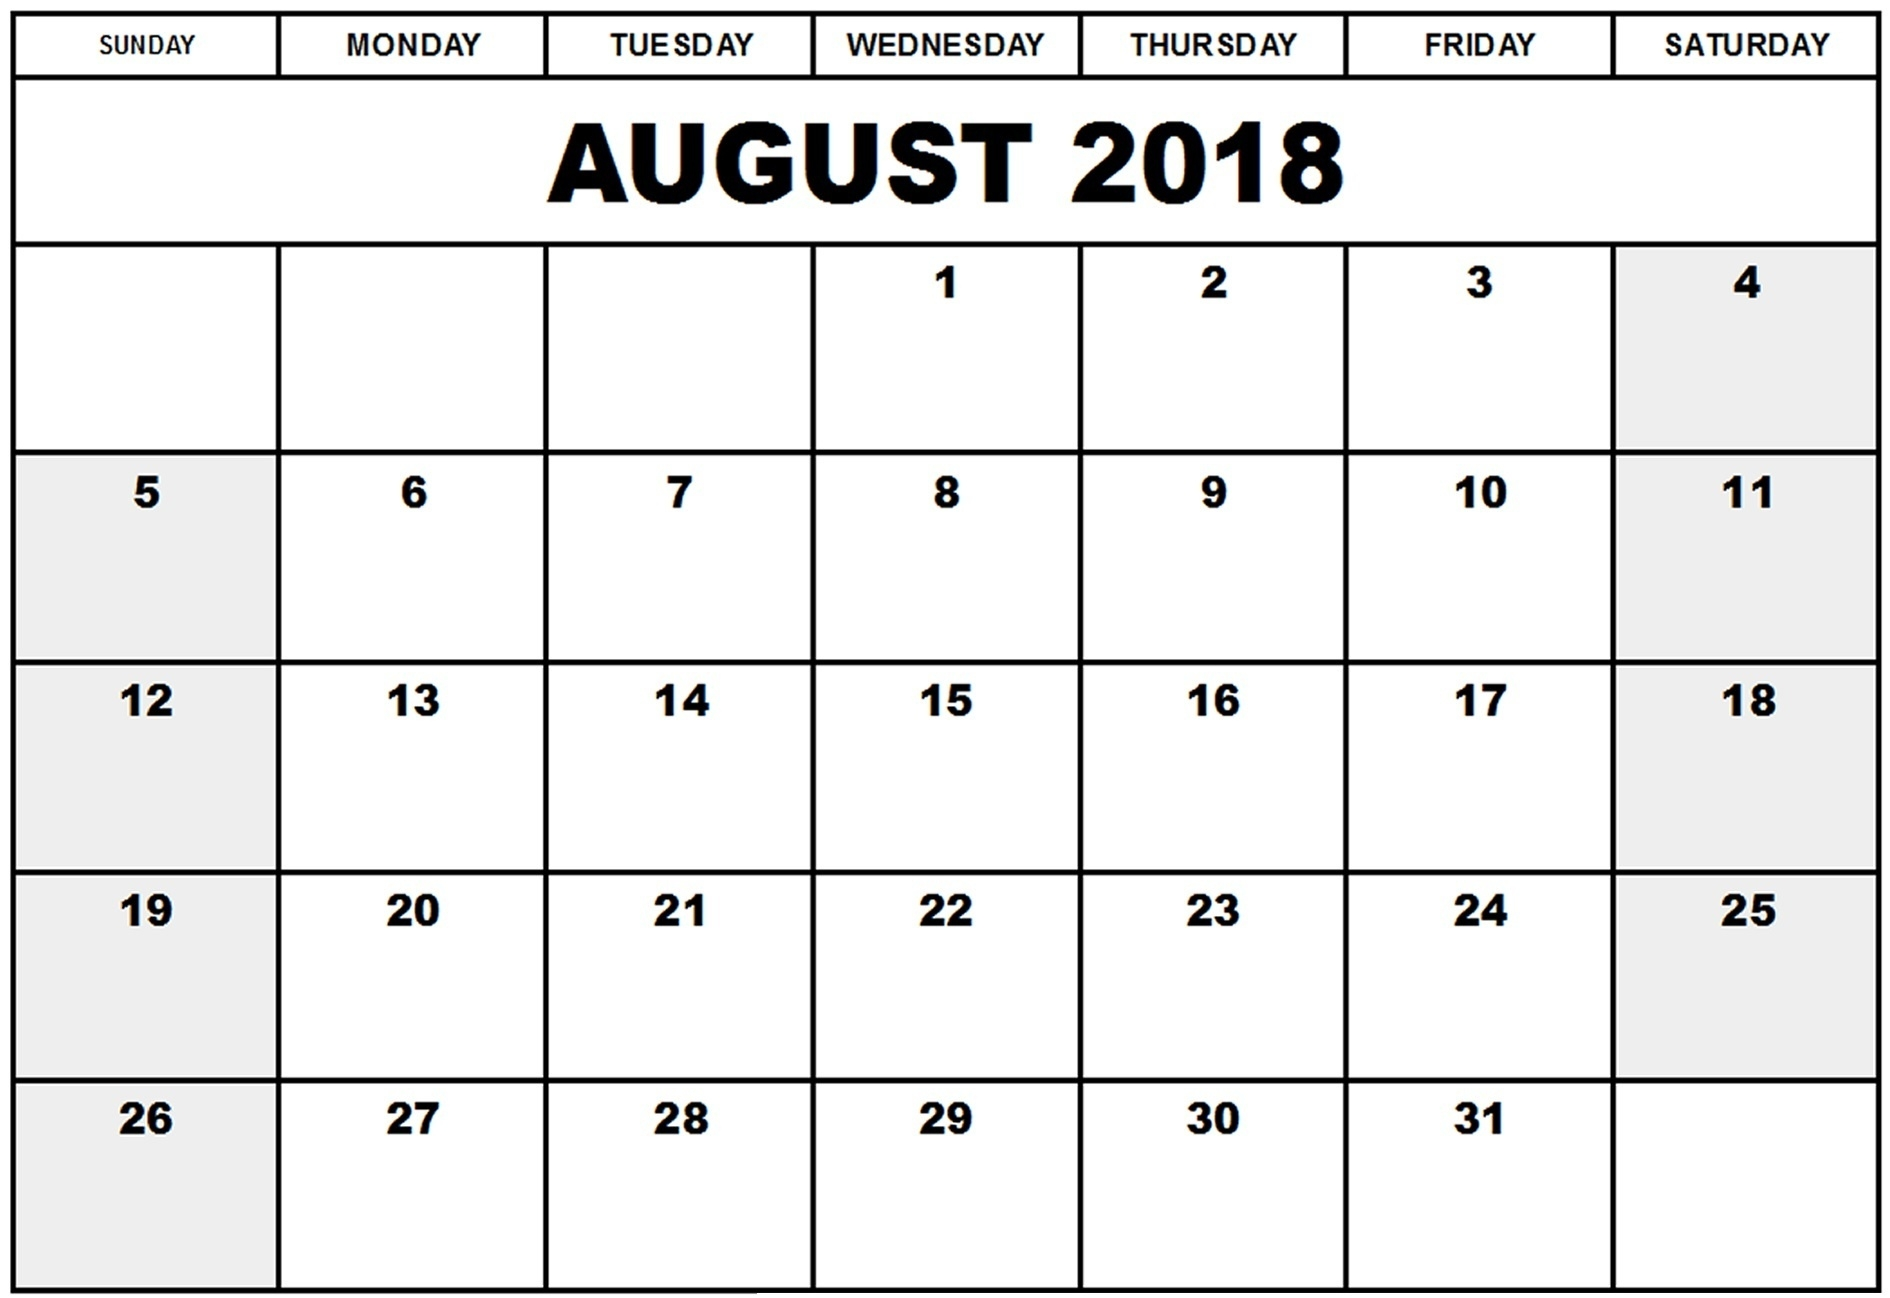 August Month 2018 Blank Calendar – Printable 2018 Calendar Templates  August Printable Calendar By Month